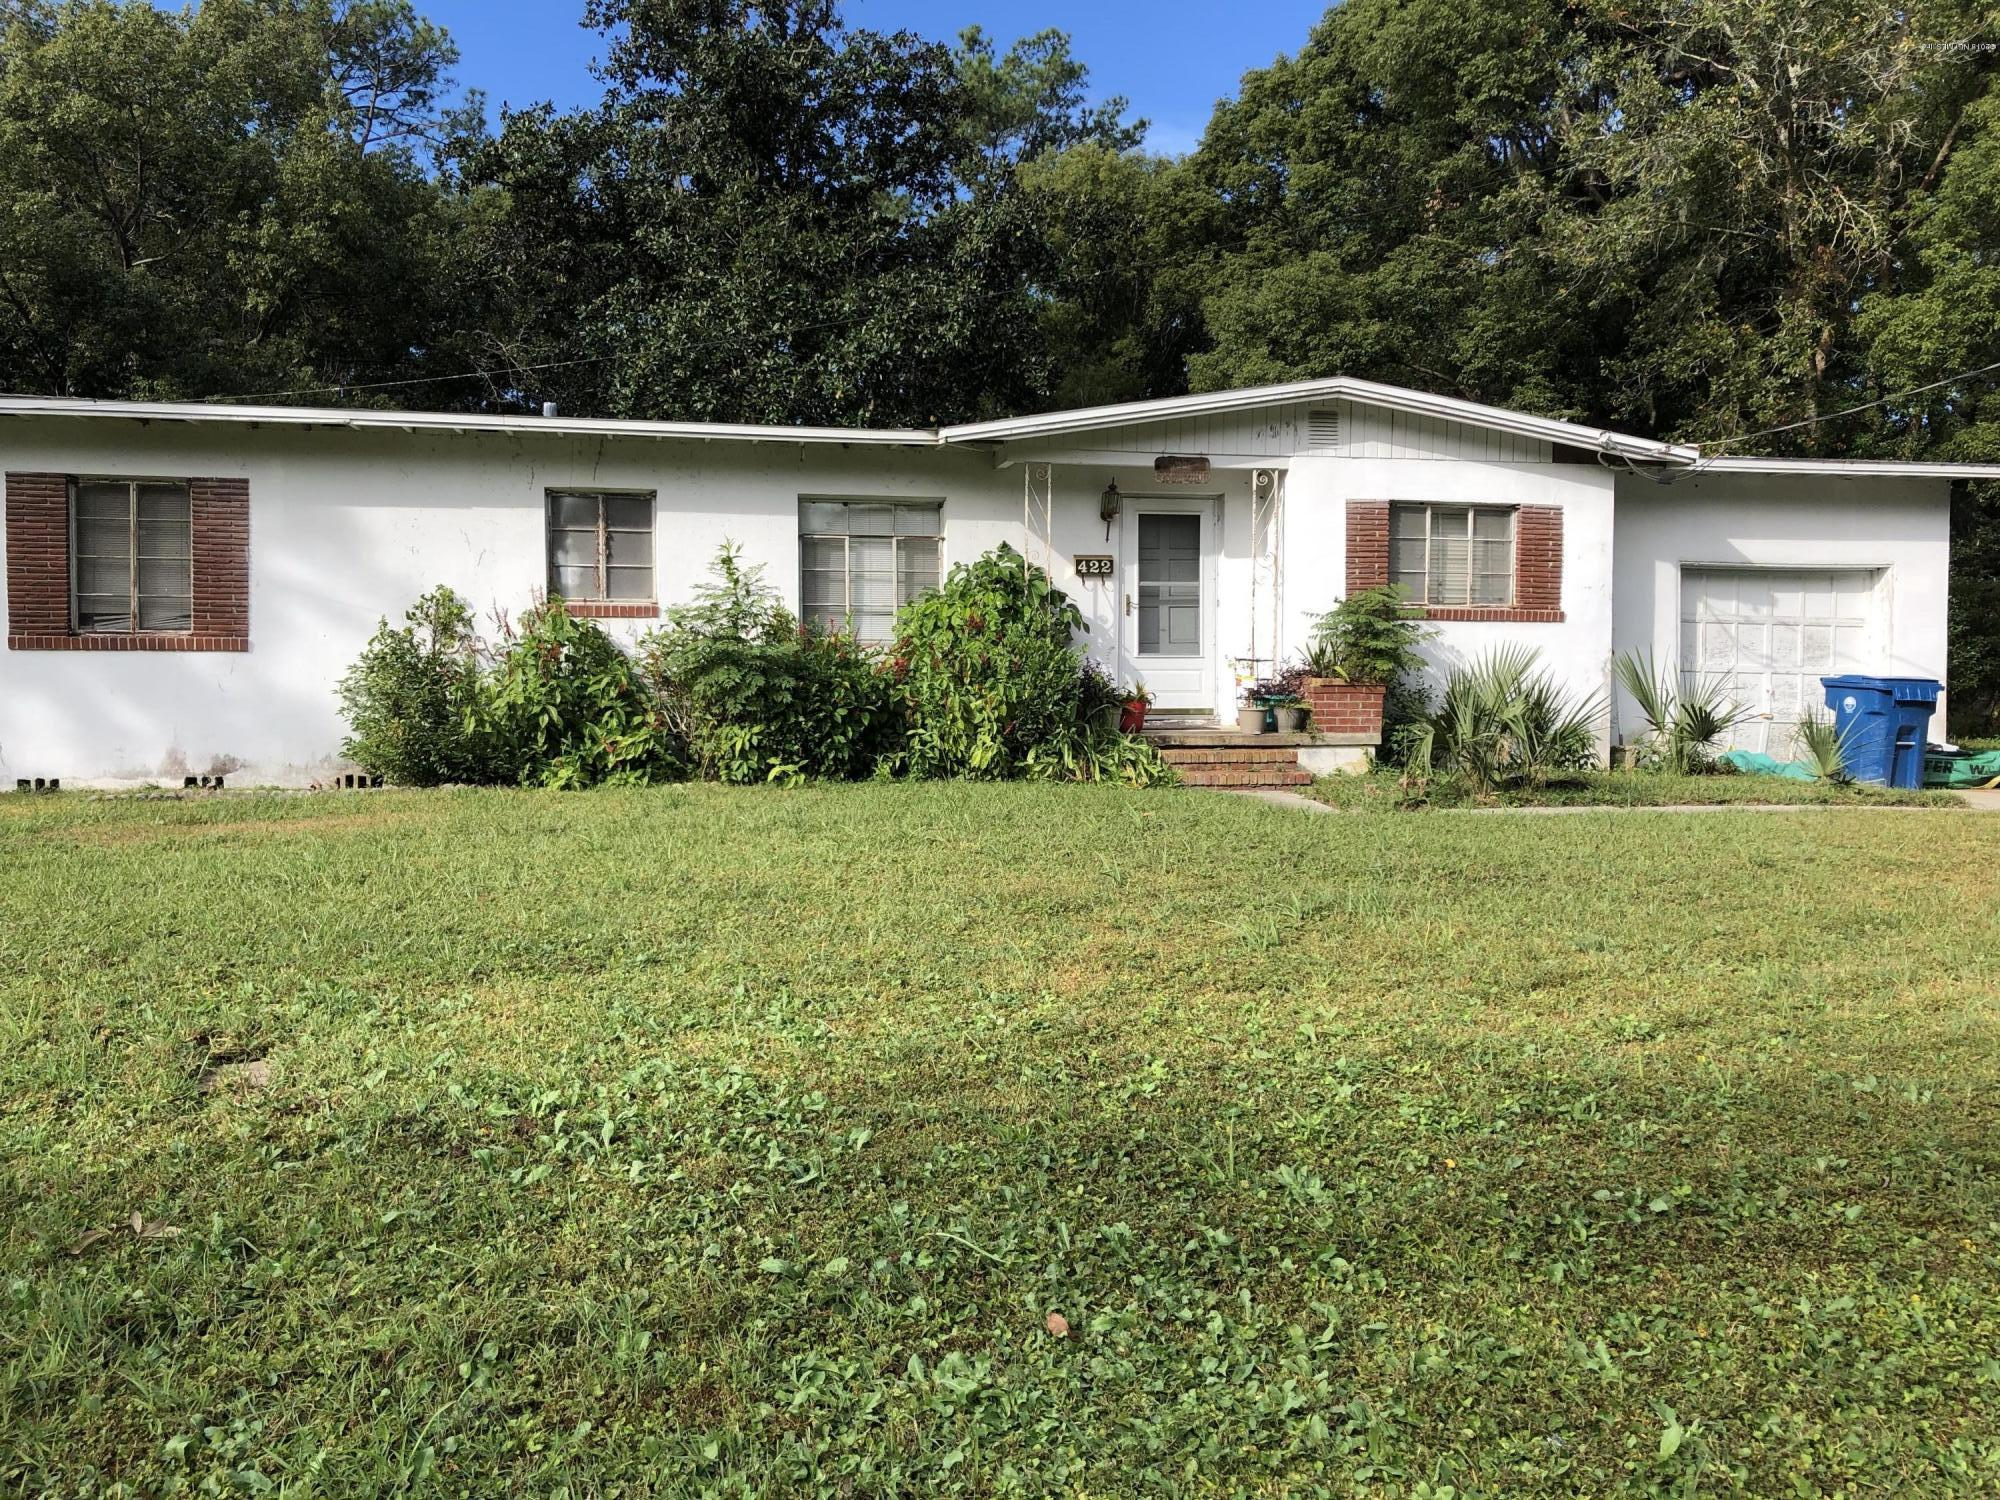 422 SAFER, JACKSONVILLE, FLORIDA 32211, 3 Bedrooms Bedrooms, ,2 BathroomsBathrooms,Residential - single family,For sale,SAFER,965487